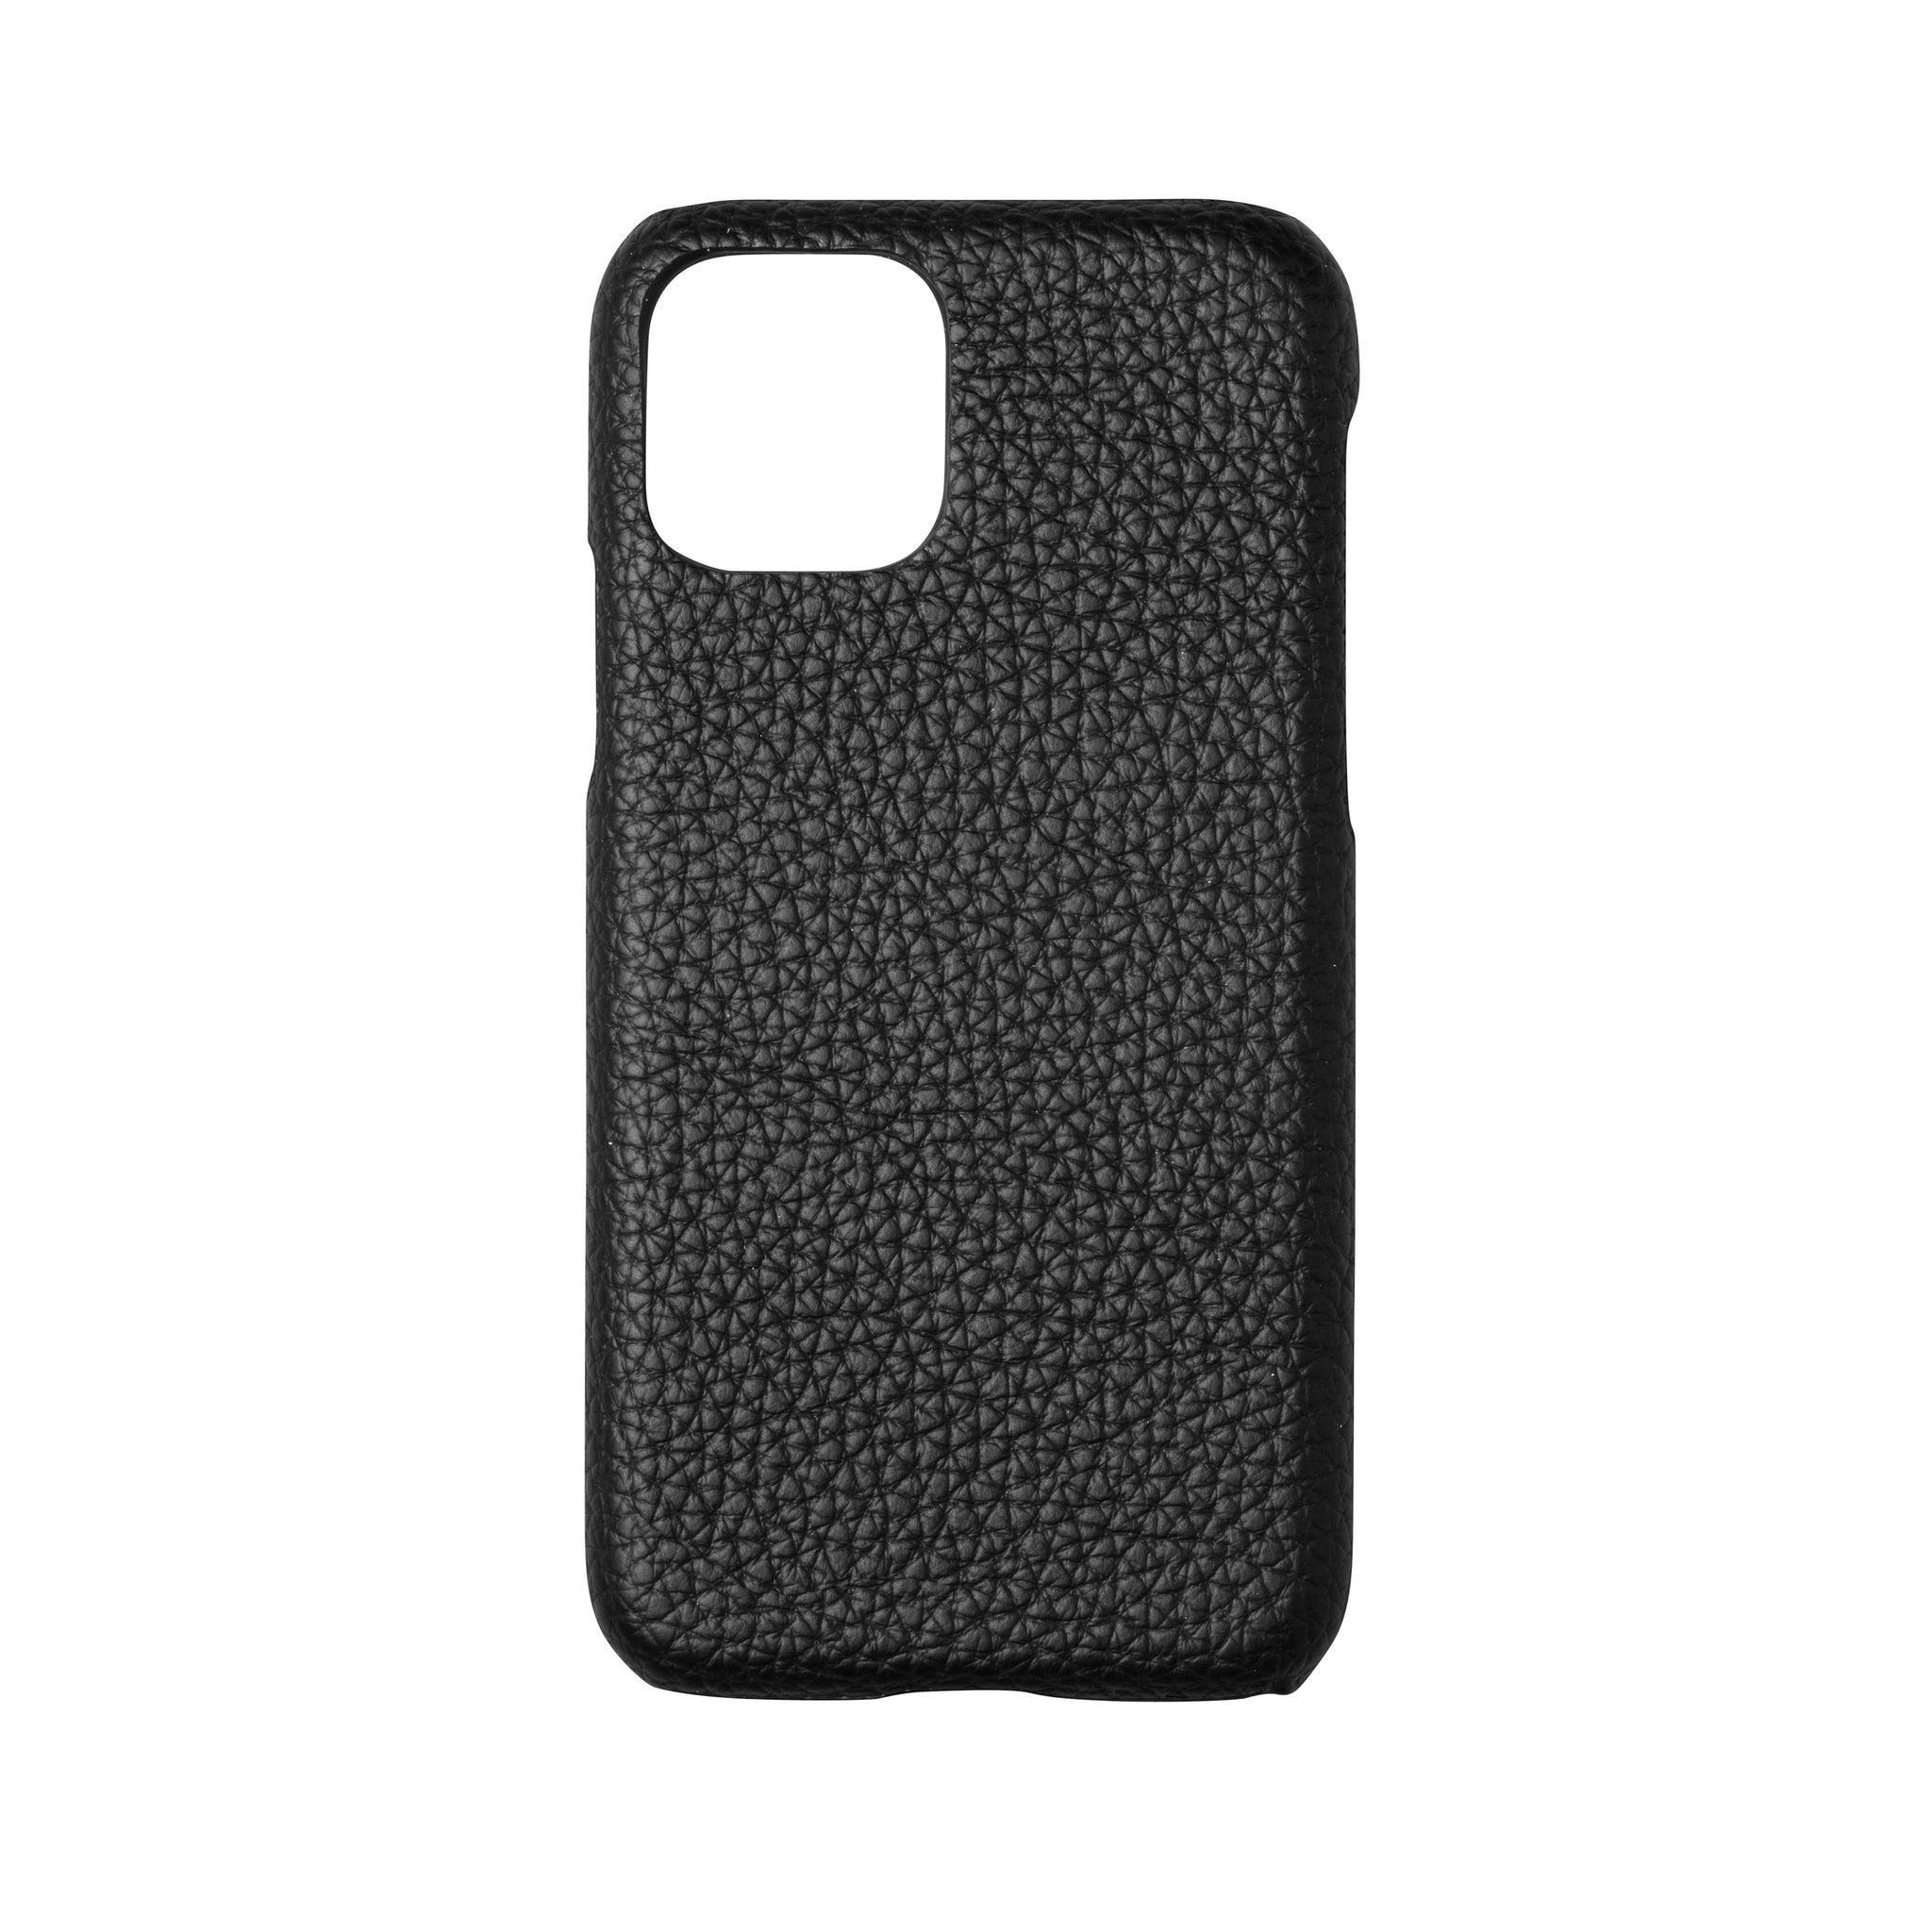 Jet Black Phone Case (iPhone 11 Pro Max)